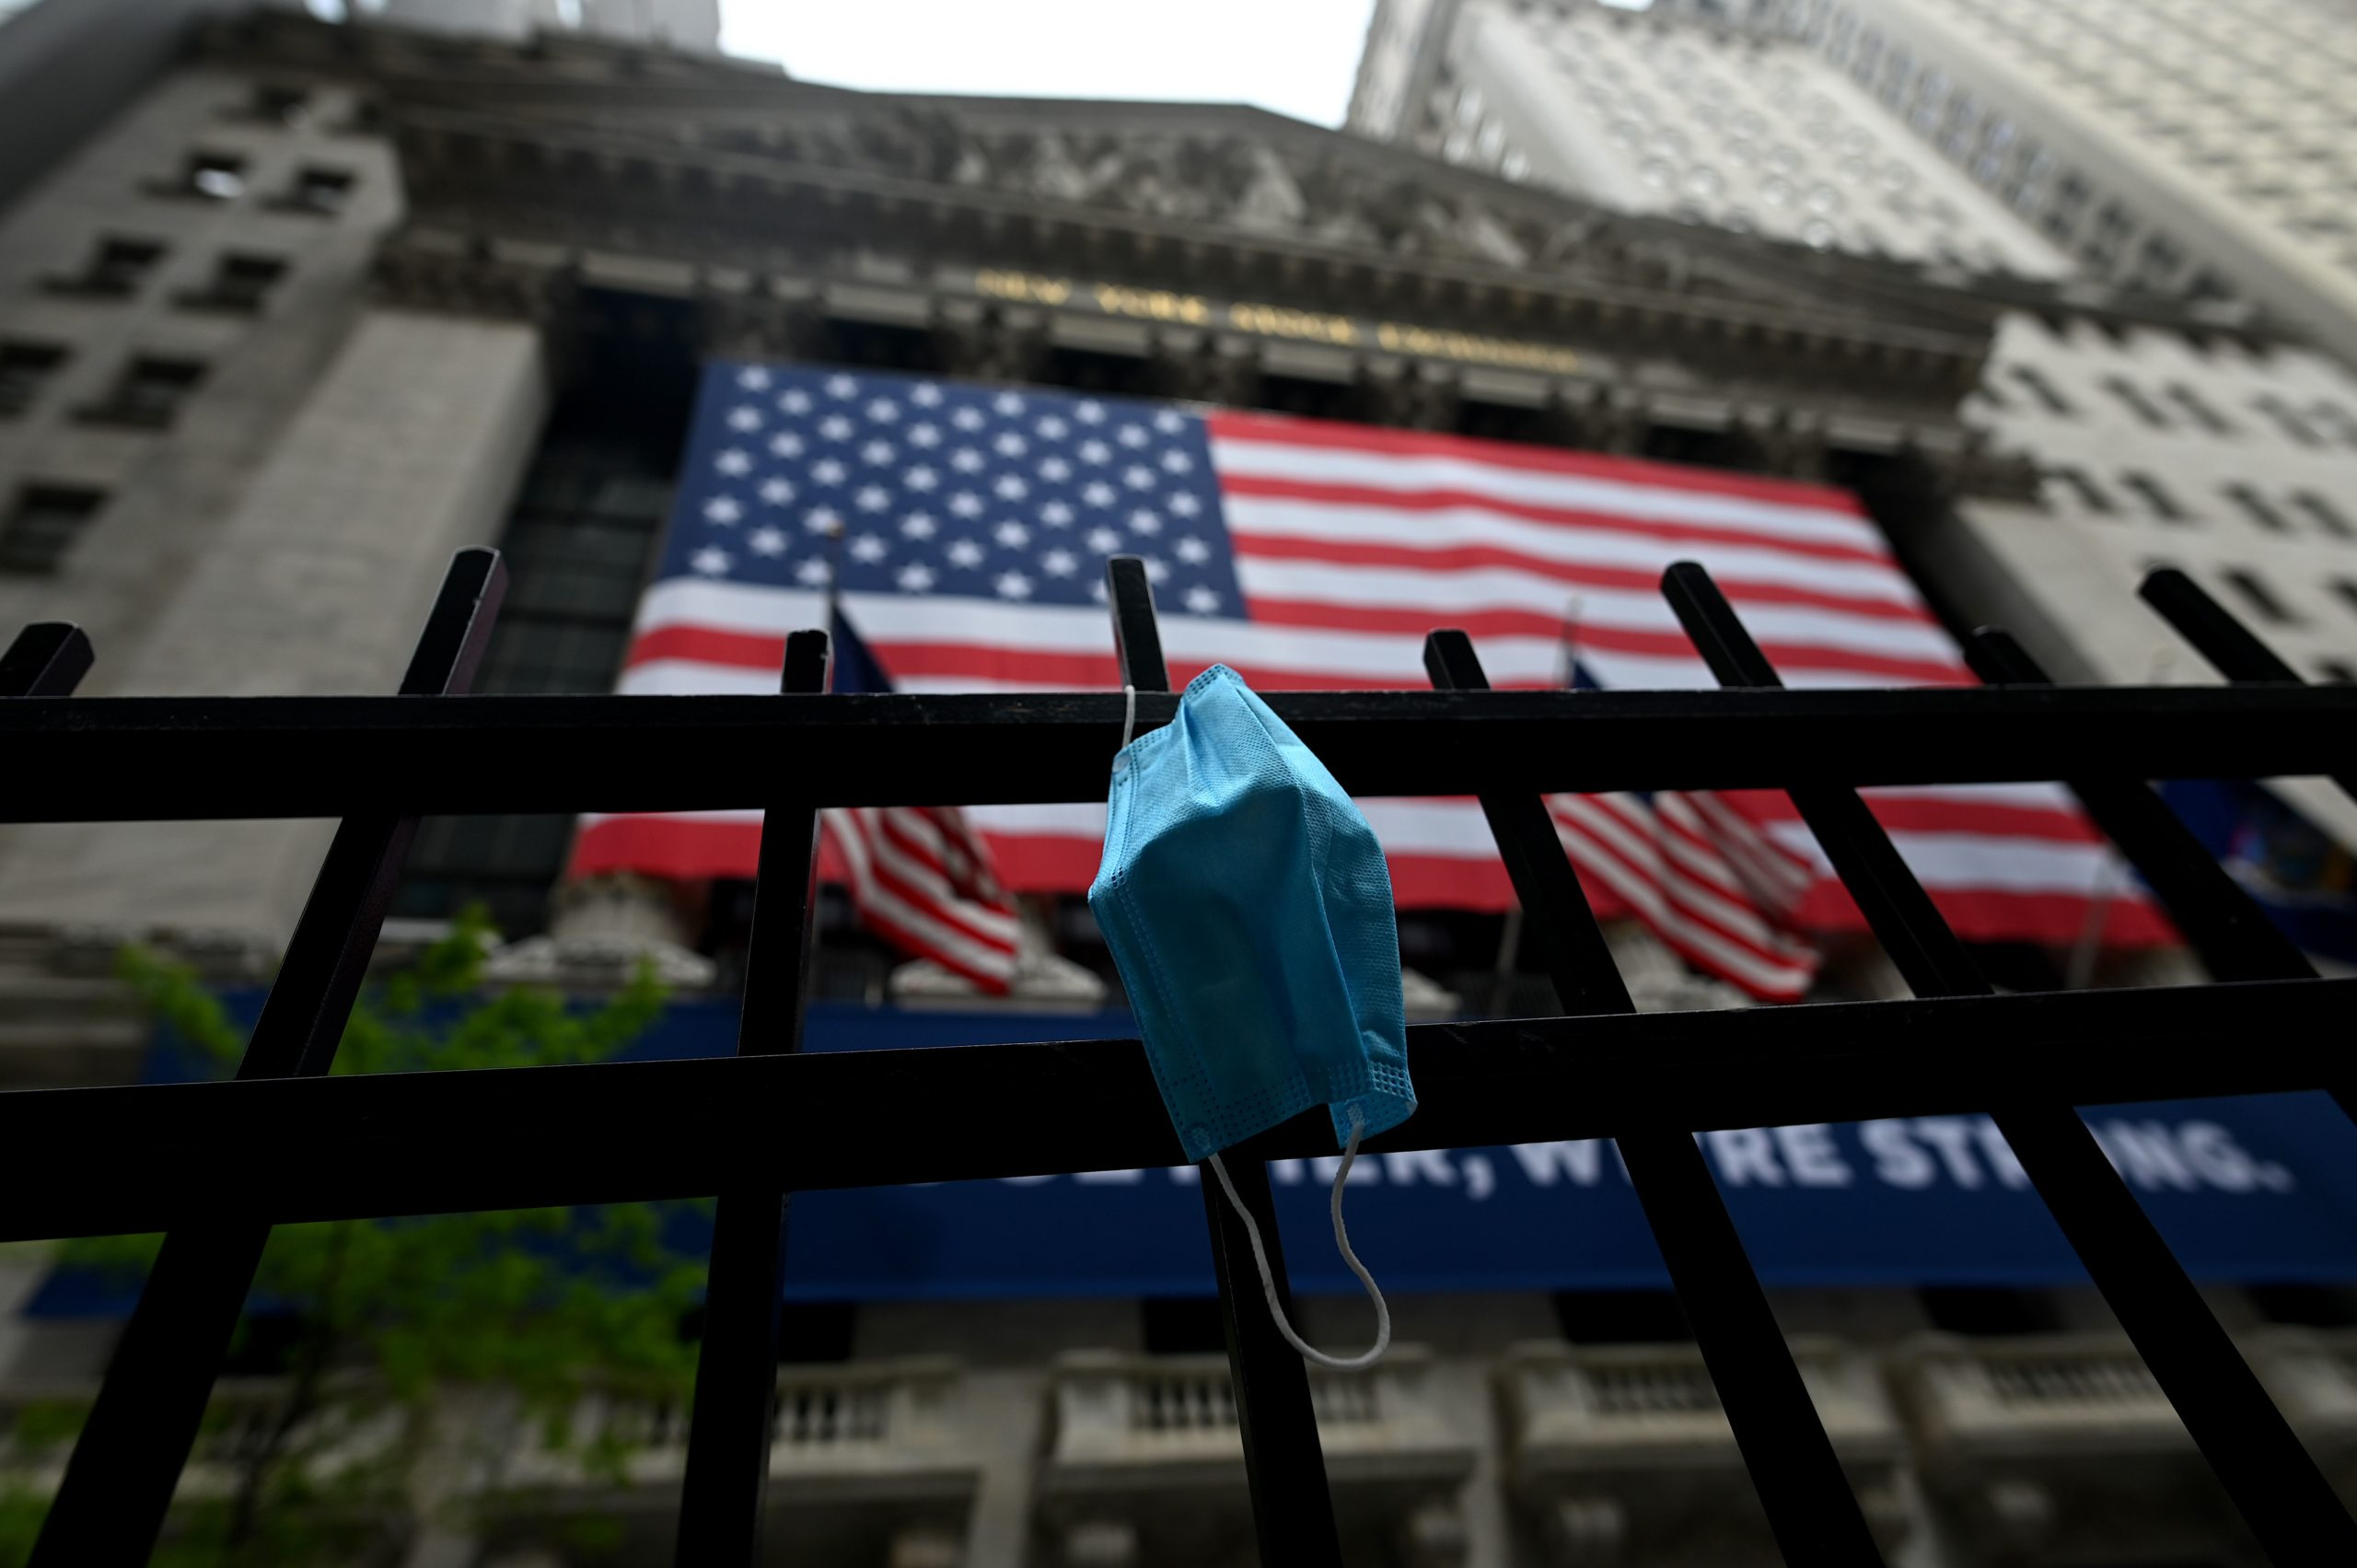 A face mask is seen in front of the New York Stock Exchange (NYSE) on May 26, 2020 at Wall Street in New York City. - Global stock markets climbed Monday, buoyed by the prospect of further easing of coronavirus lockdowns despite sharp increases in case rates in some countries such as Brazil. Over the weekend, US President Donald Trump imposed travel limits on Brazil, now the second worst affected country after the United States, reminding markets that while the coronavirus outlook is better, the crisis is far from over. (Photo by Johannes EISELE / AFP) (Photo by JOHANNES EISELE/AFP via Getty Images)